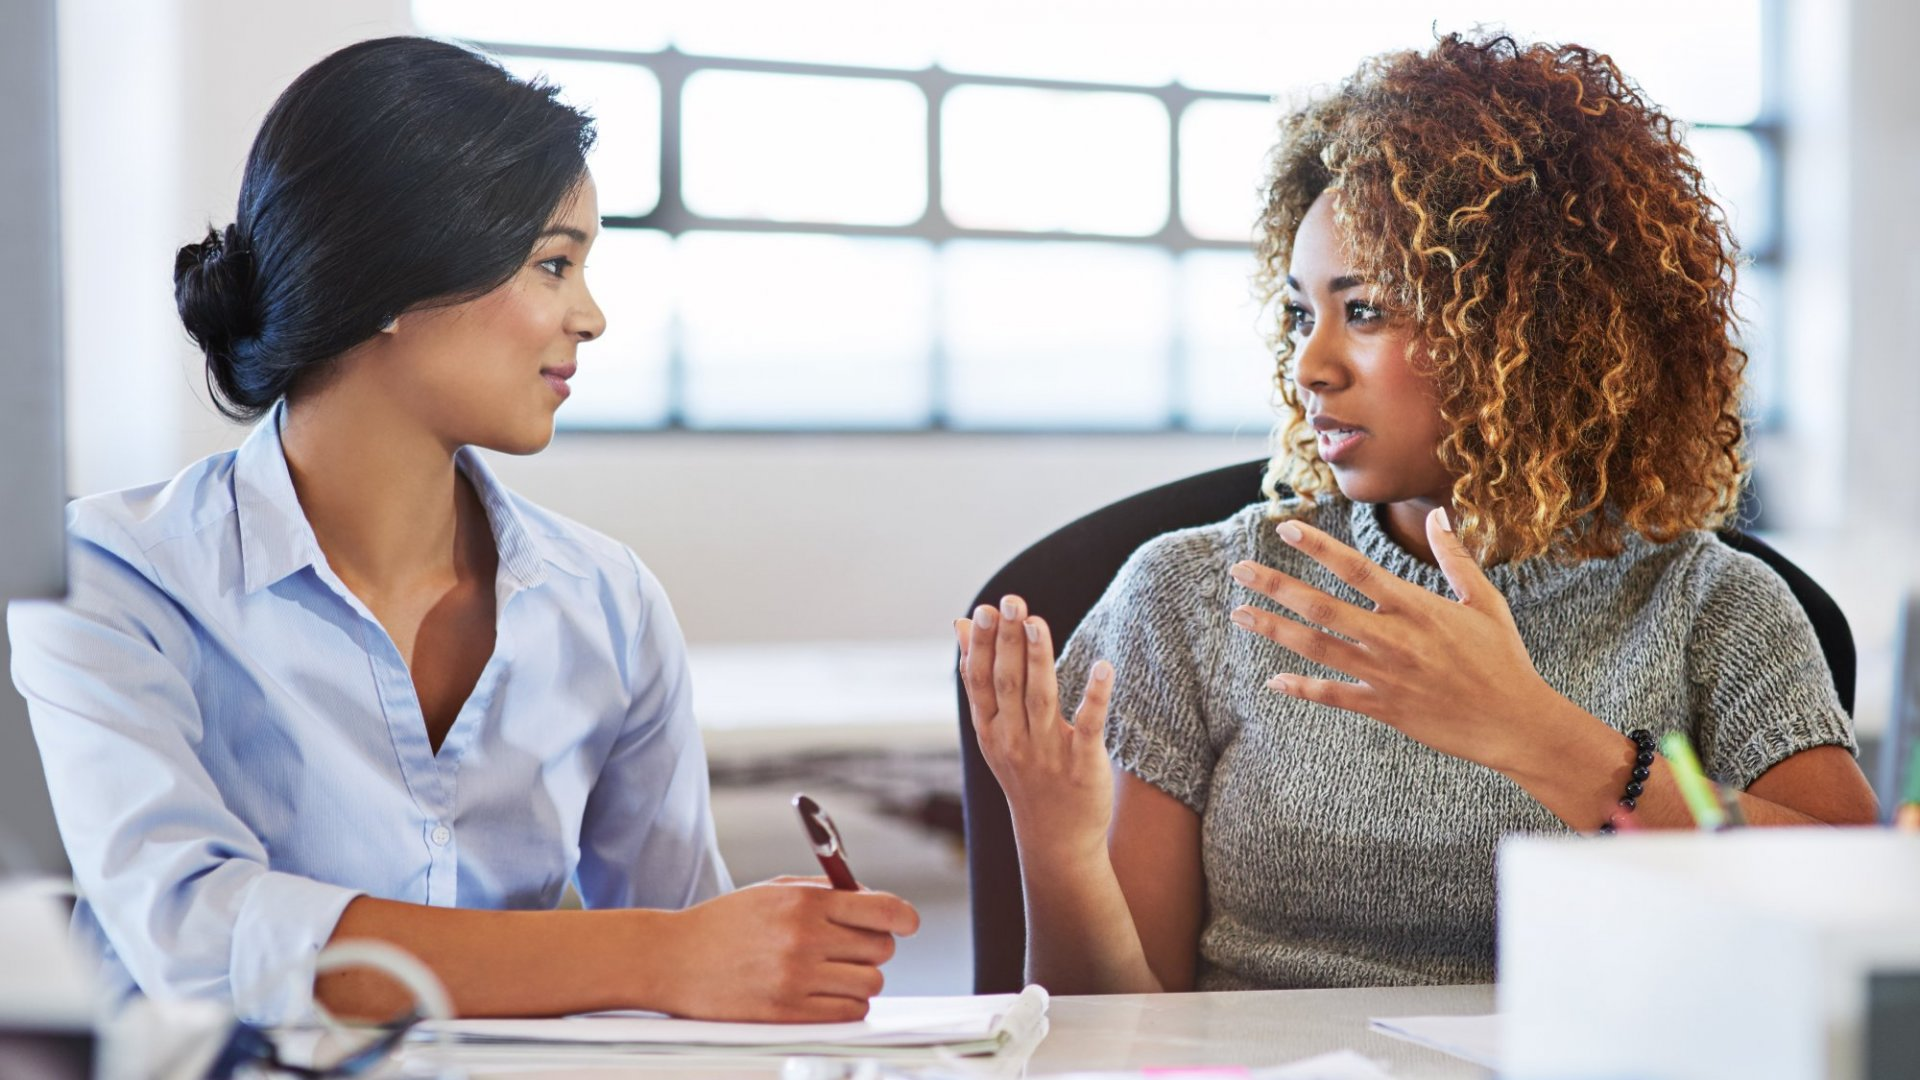 15 Reasons Why Dialogue Can Help Your Company Become More Collaborative, Innovative--and Successful